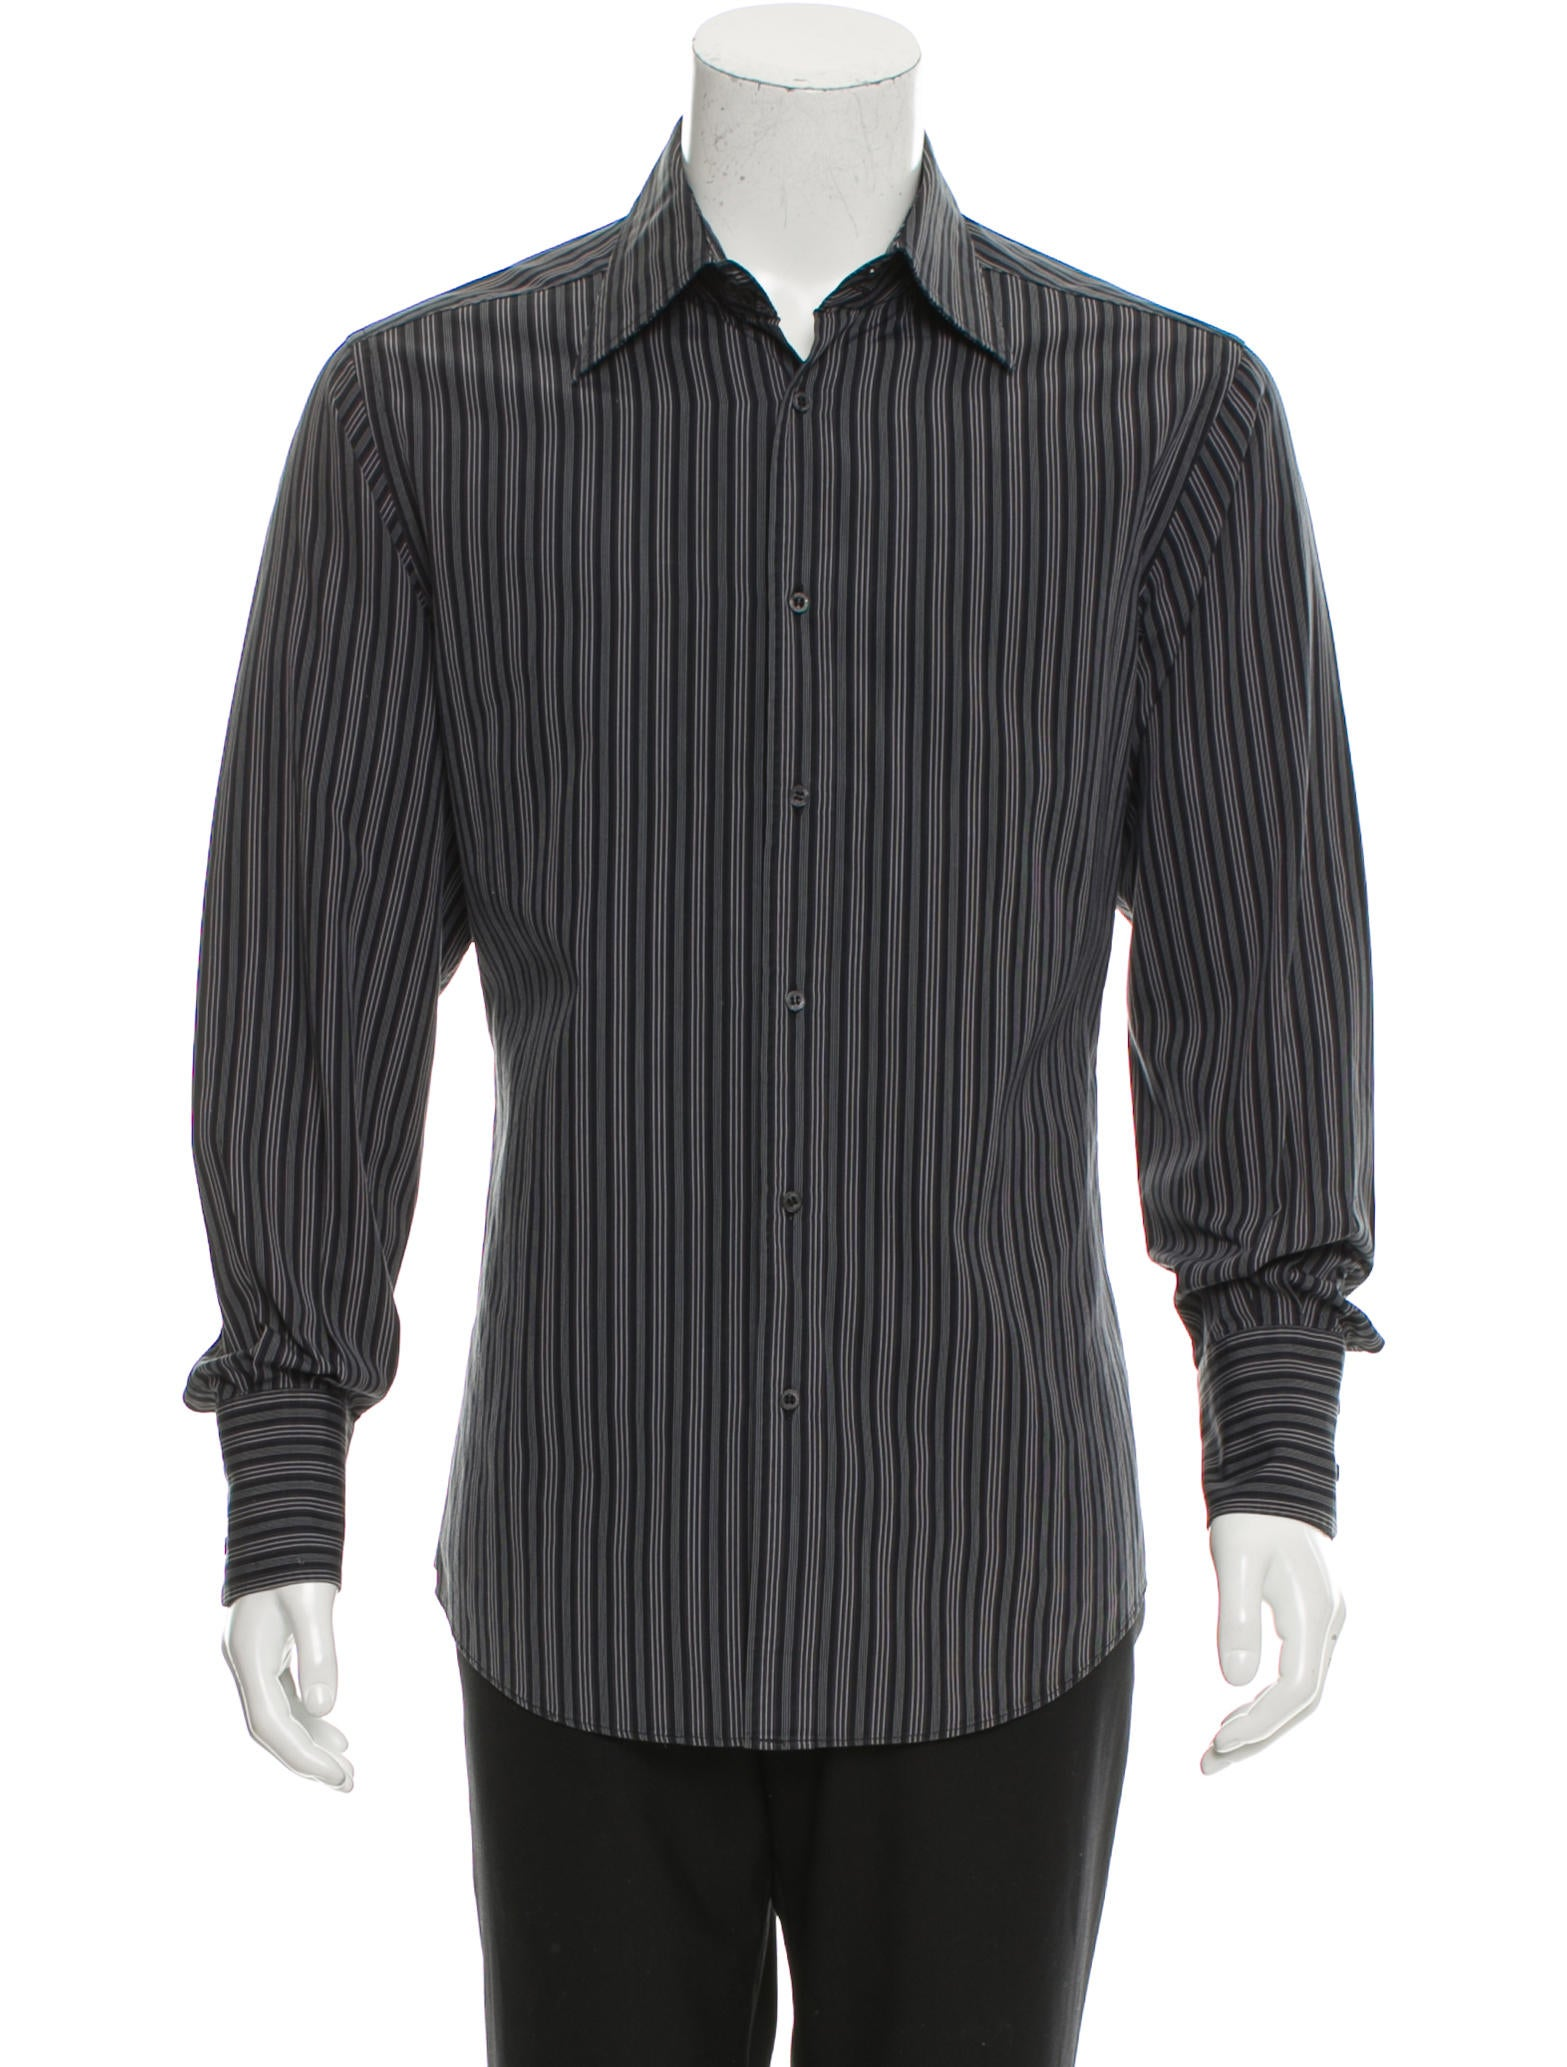 Gucci striped button up shirt clothing guc152851 the for Striped button up shirt mens